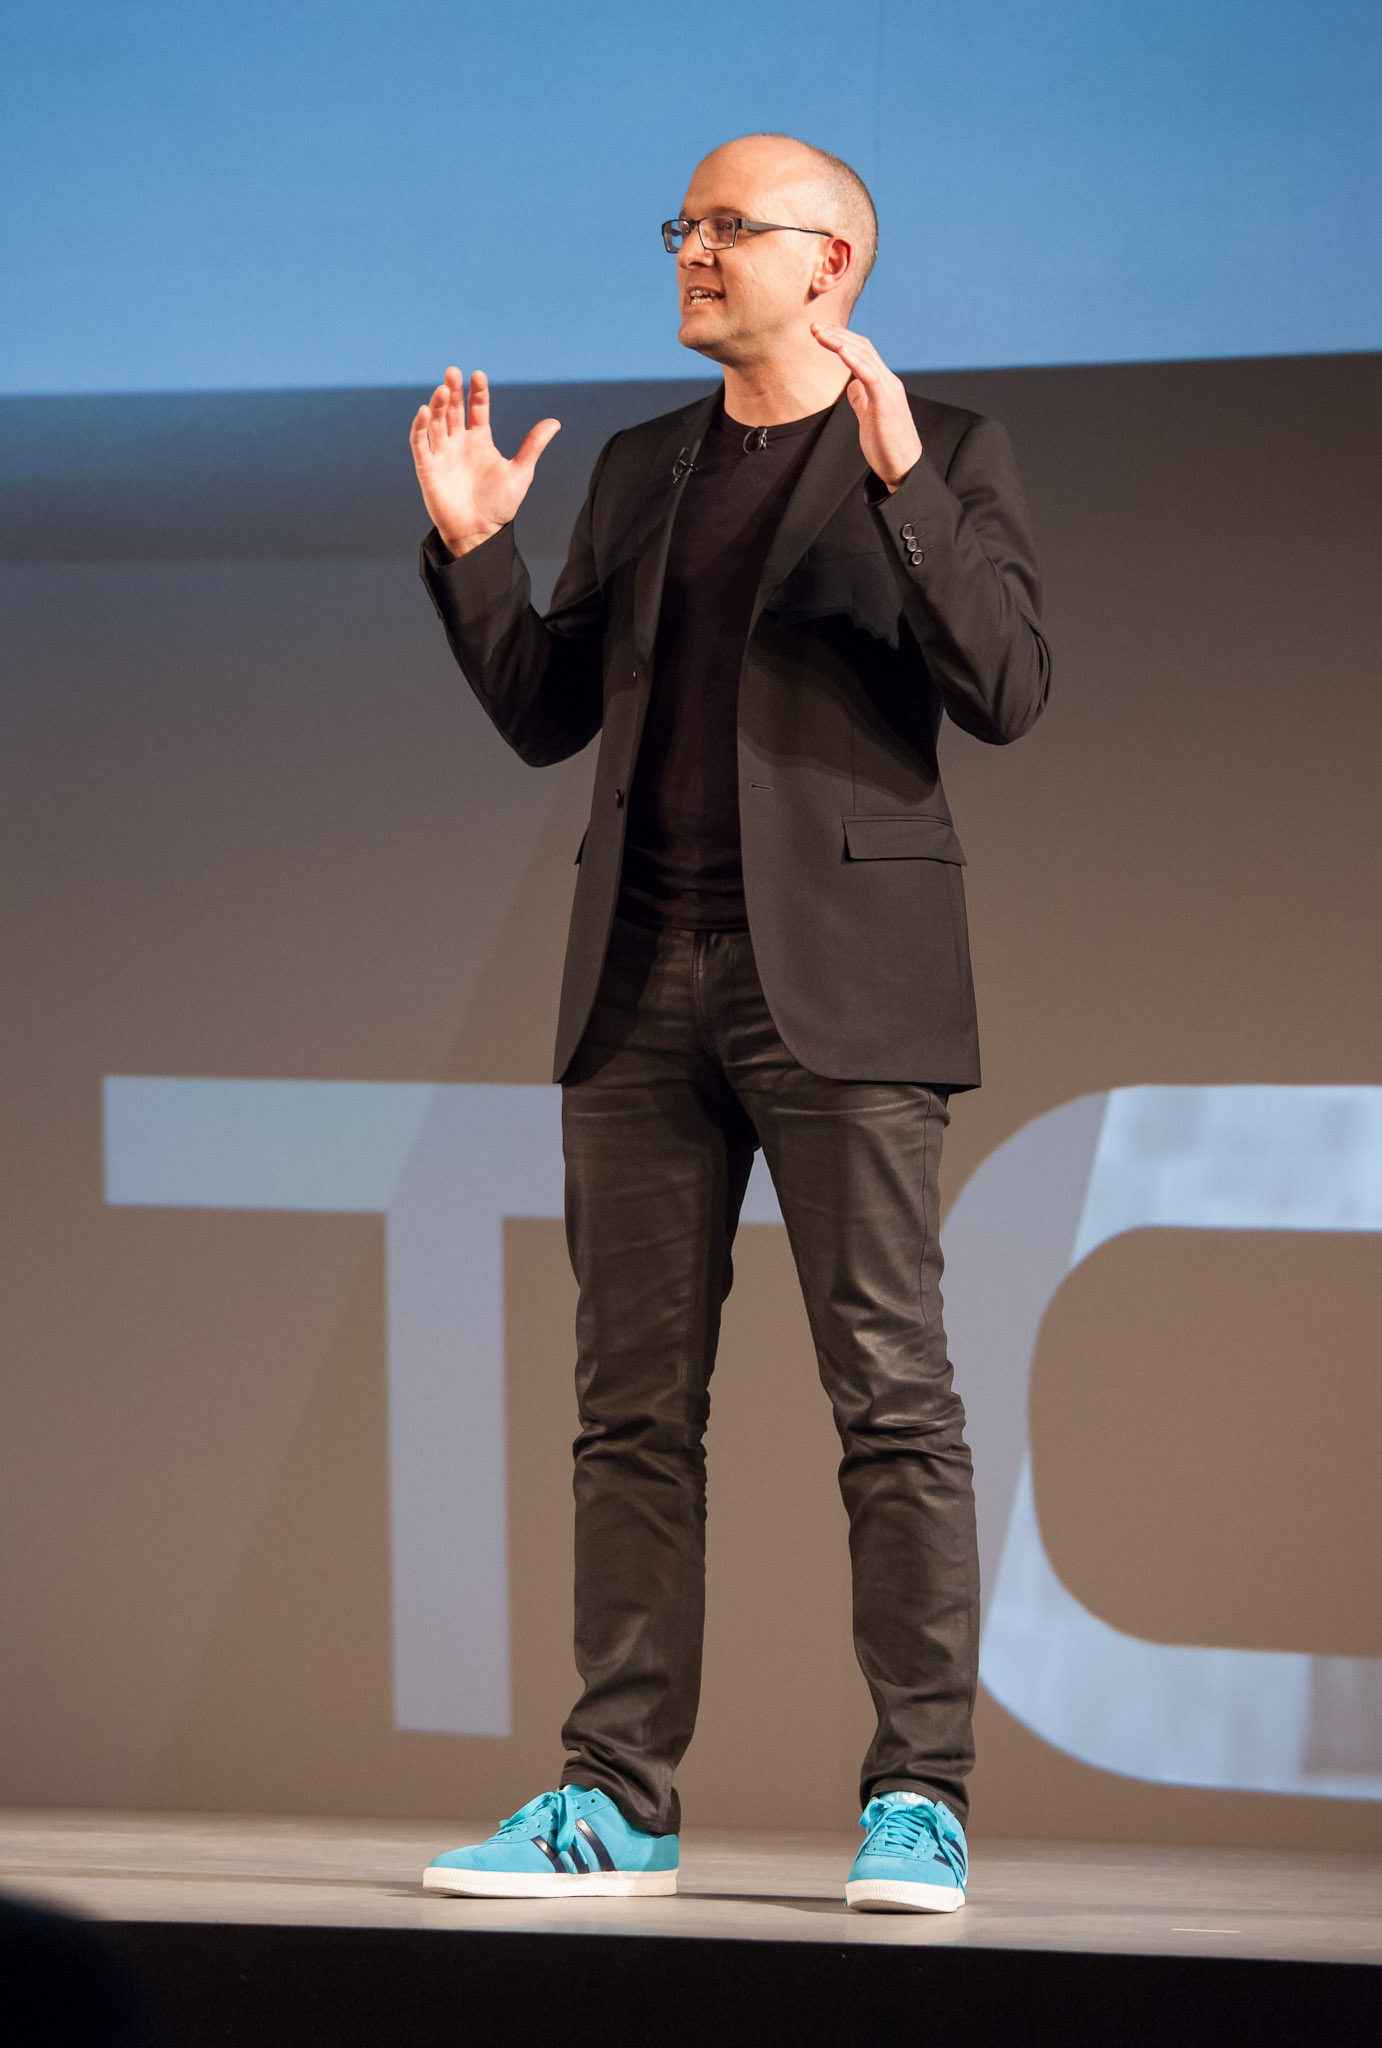 HTC design chief Scott Croyle touts the HTC One line of phones at Mobile World Congress in Barcelona, Spain.